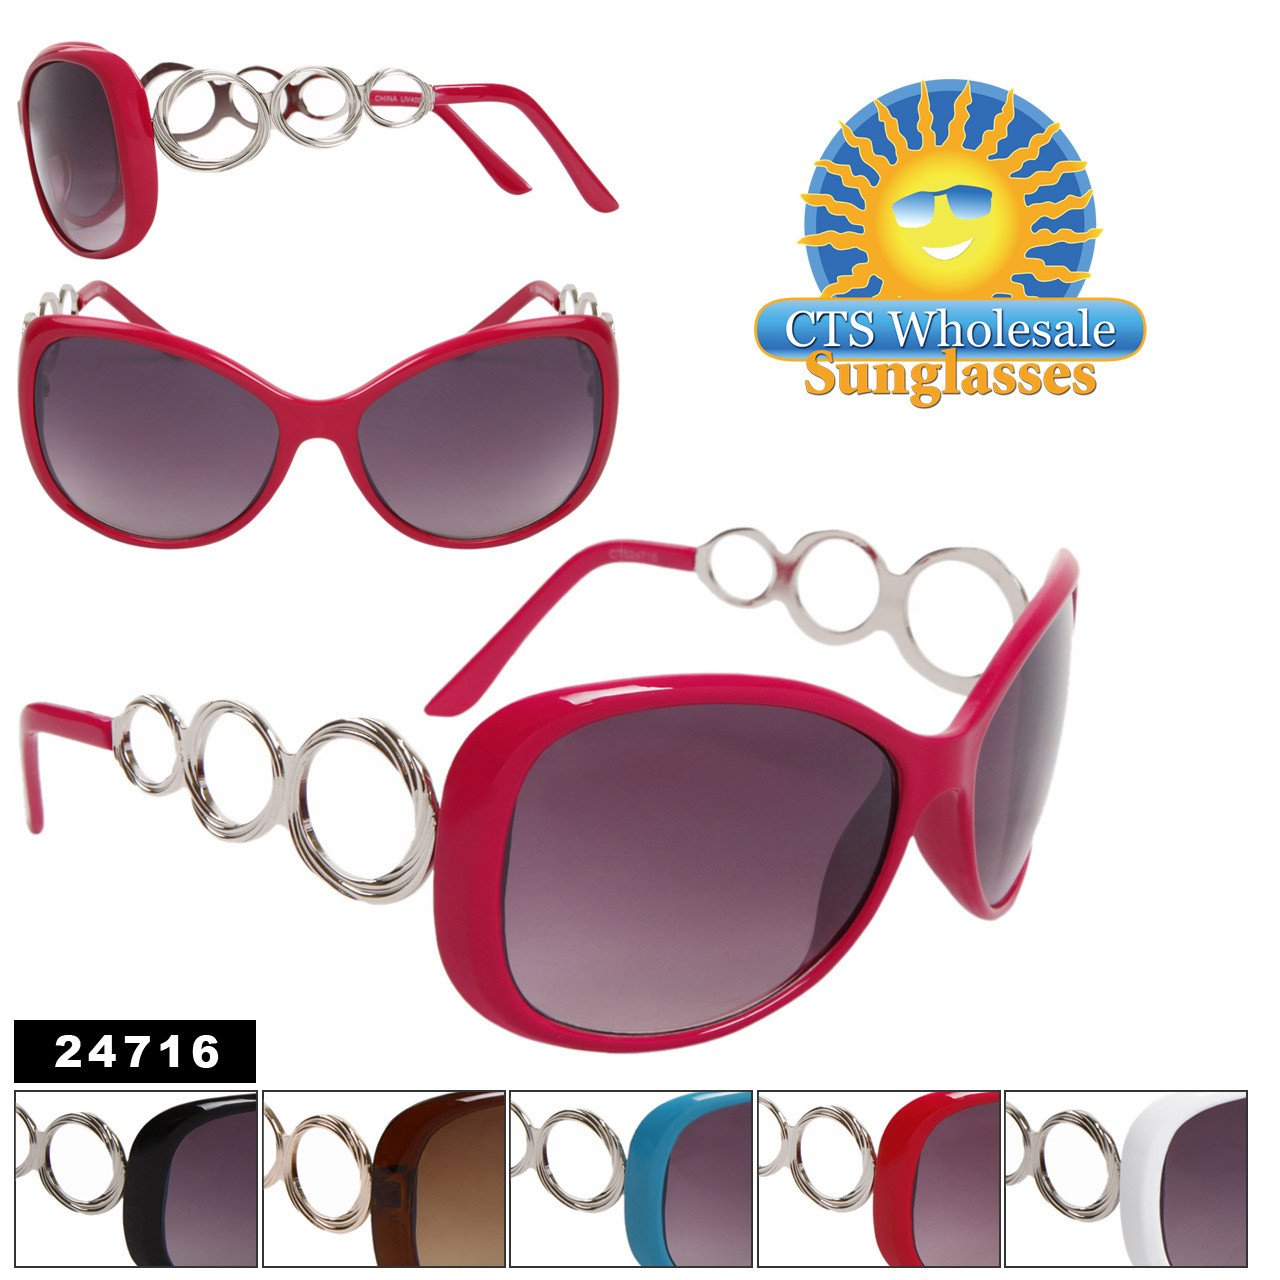 baa0d1e381 Designer Sunglasses Wholesale 24716